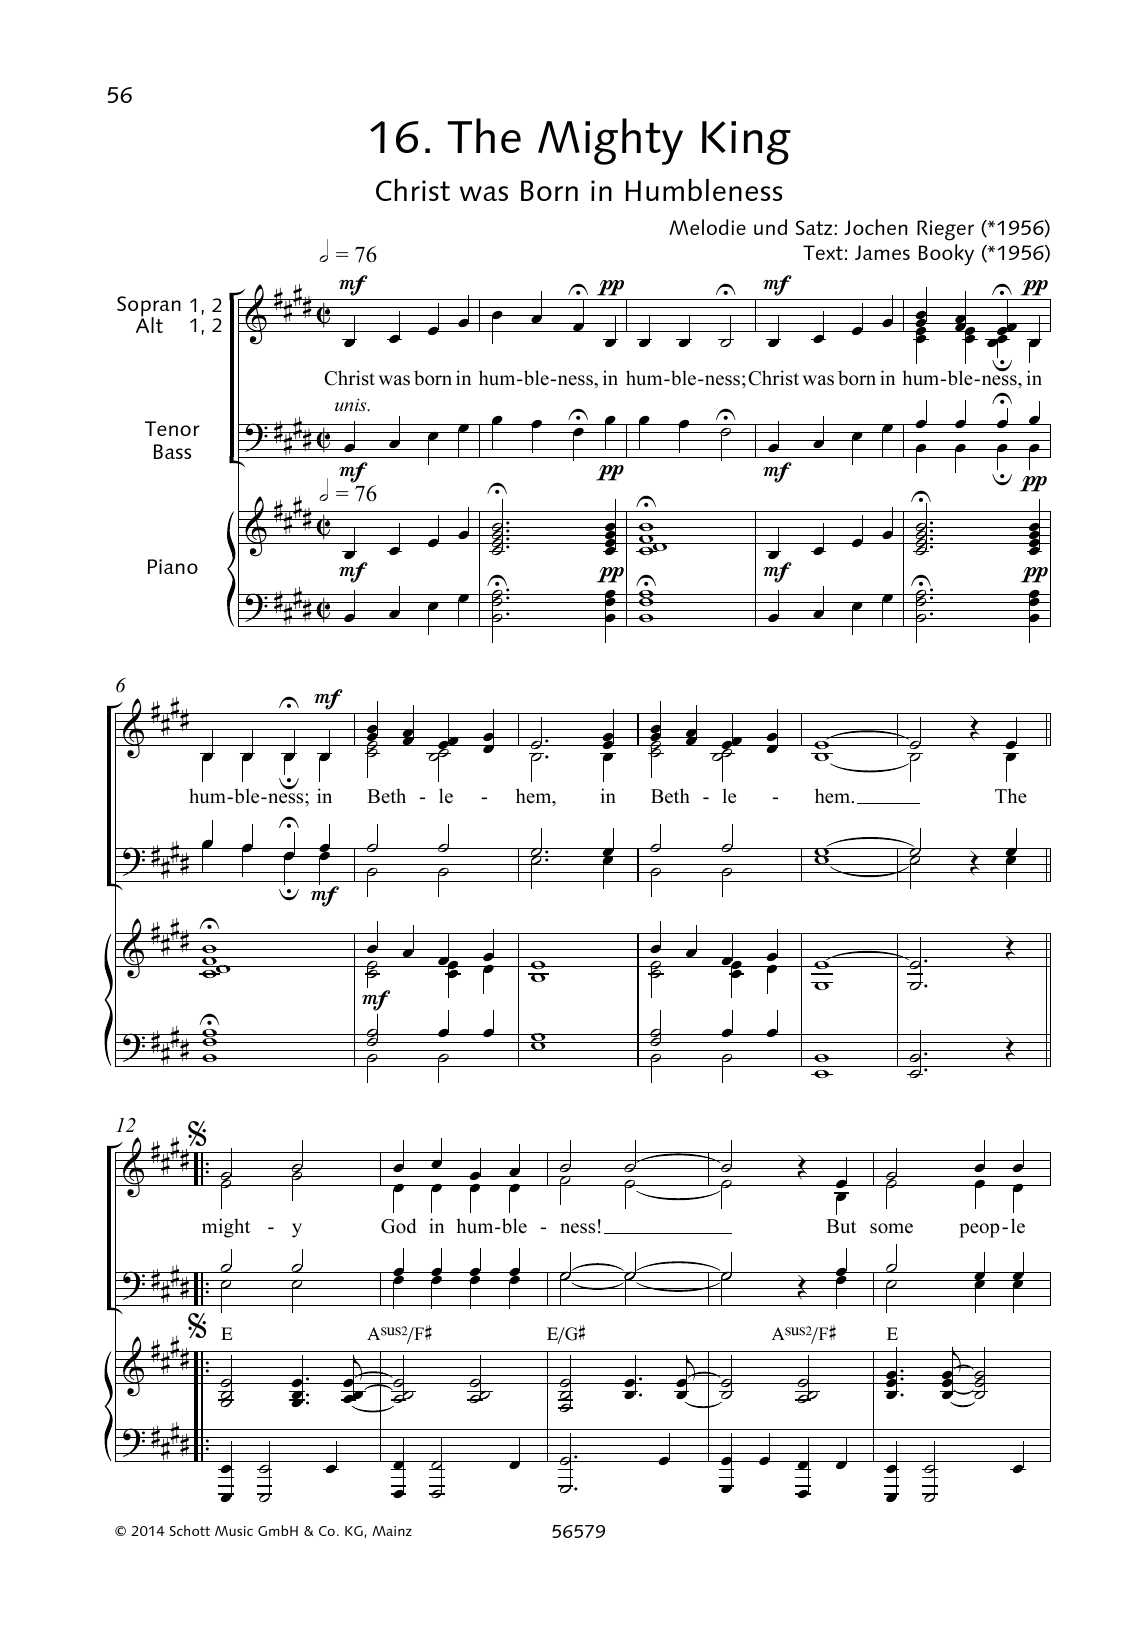 The Mighty King Sheet Music